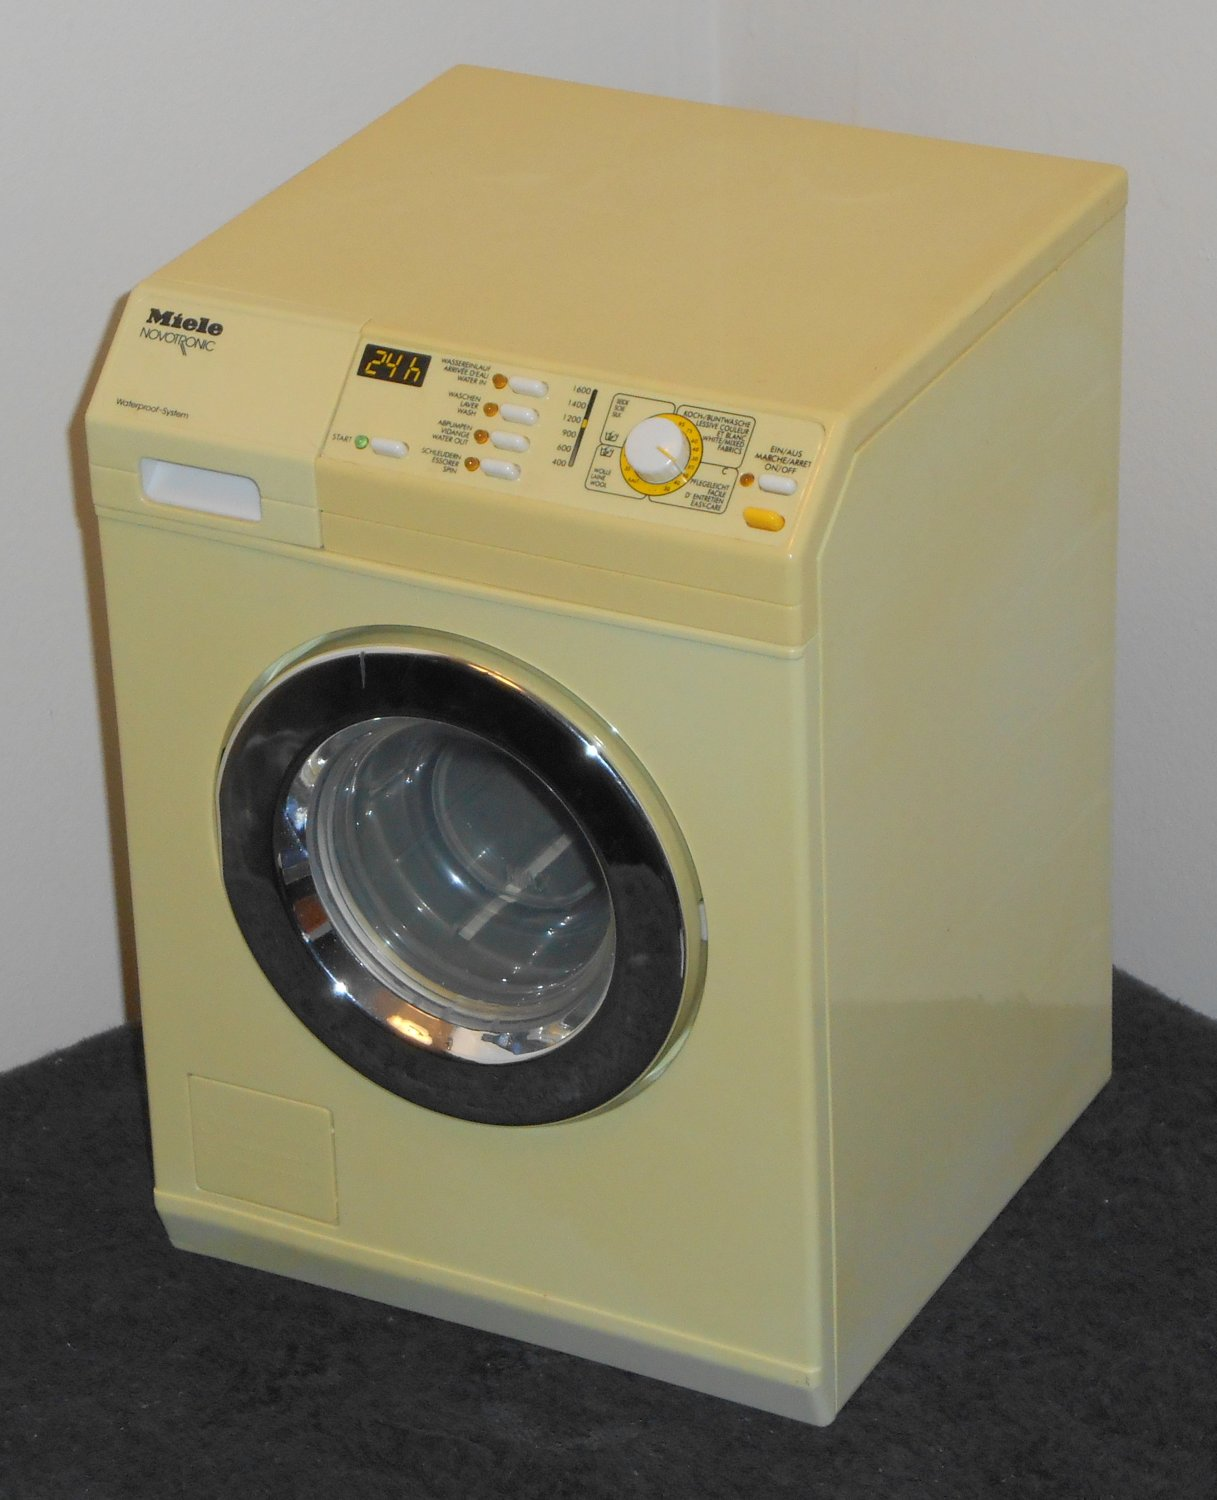 Clothes Washing Machine ~ Sold out miele novotronic doll toy clothes washer washing